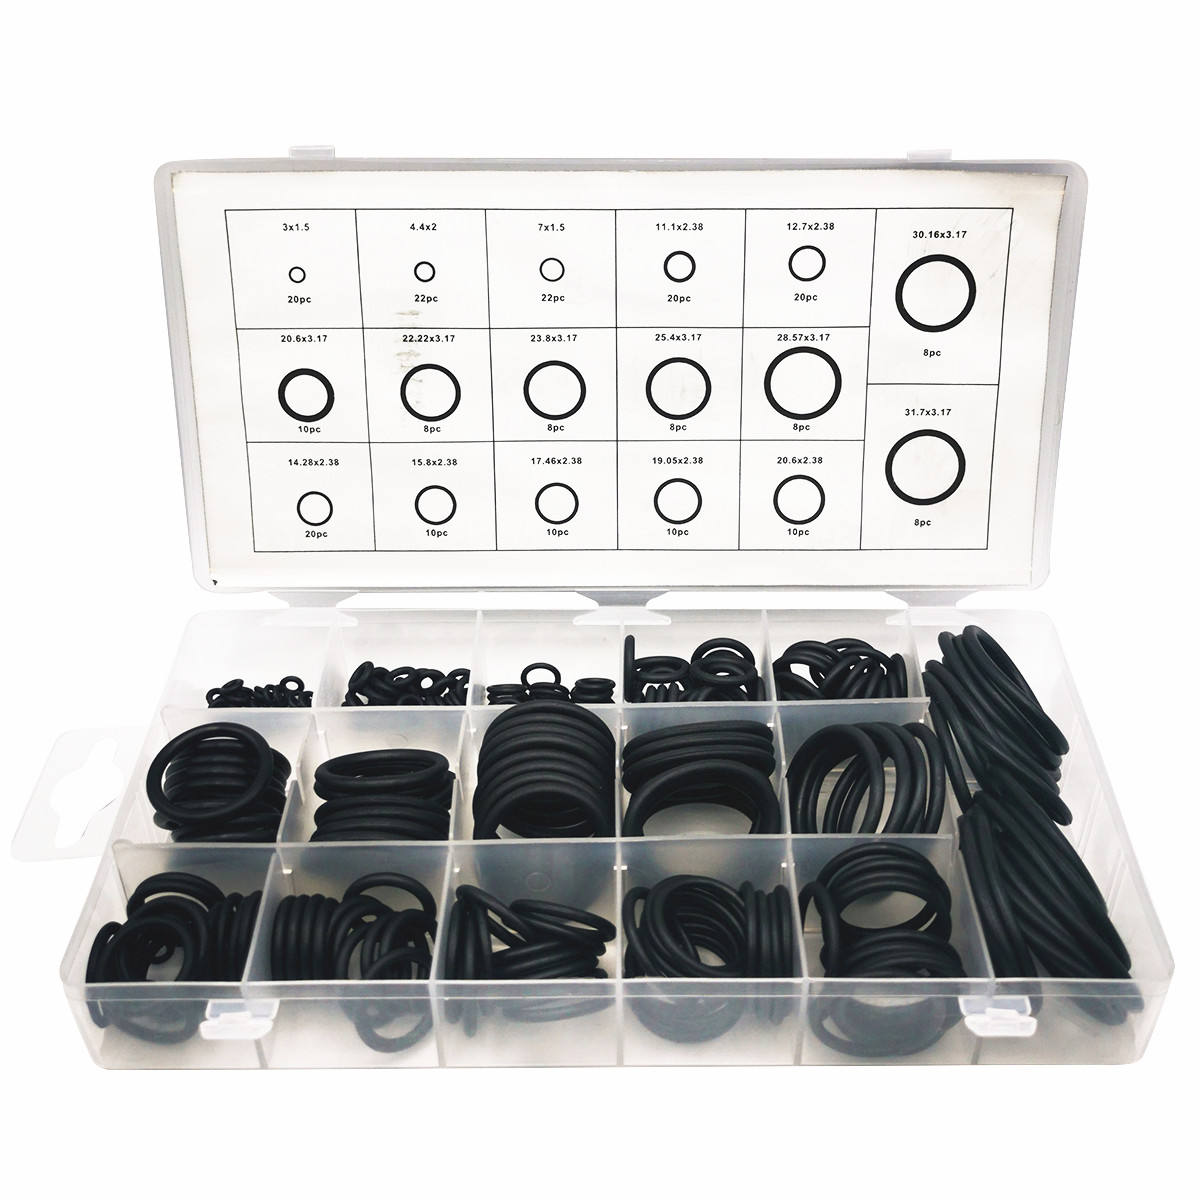 222pc Auto and Hydraulic Clear Plastic Box o-ring kit Assortment Black Seal NBR Rubber O Rings